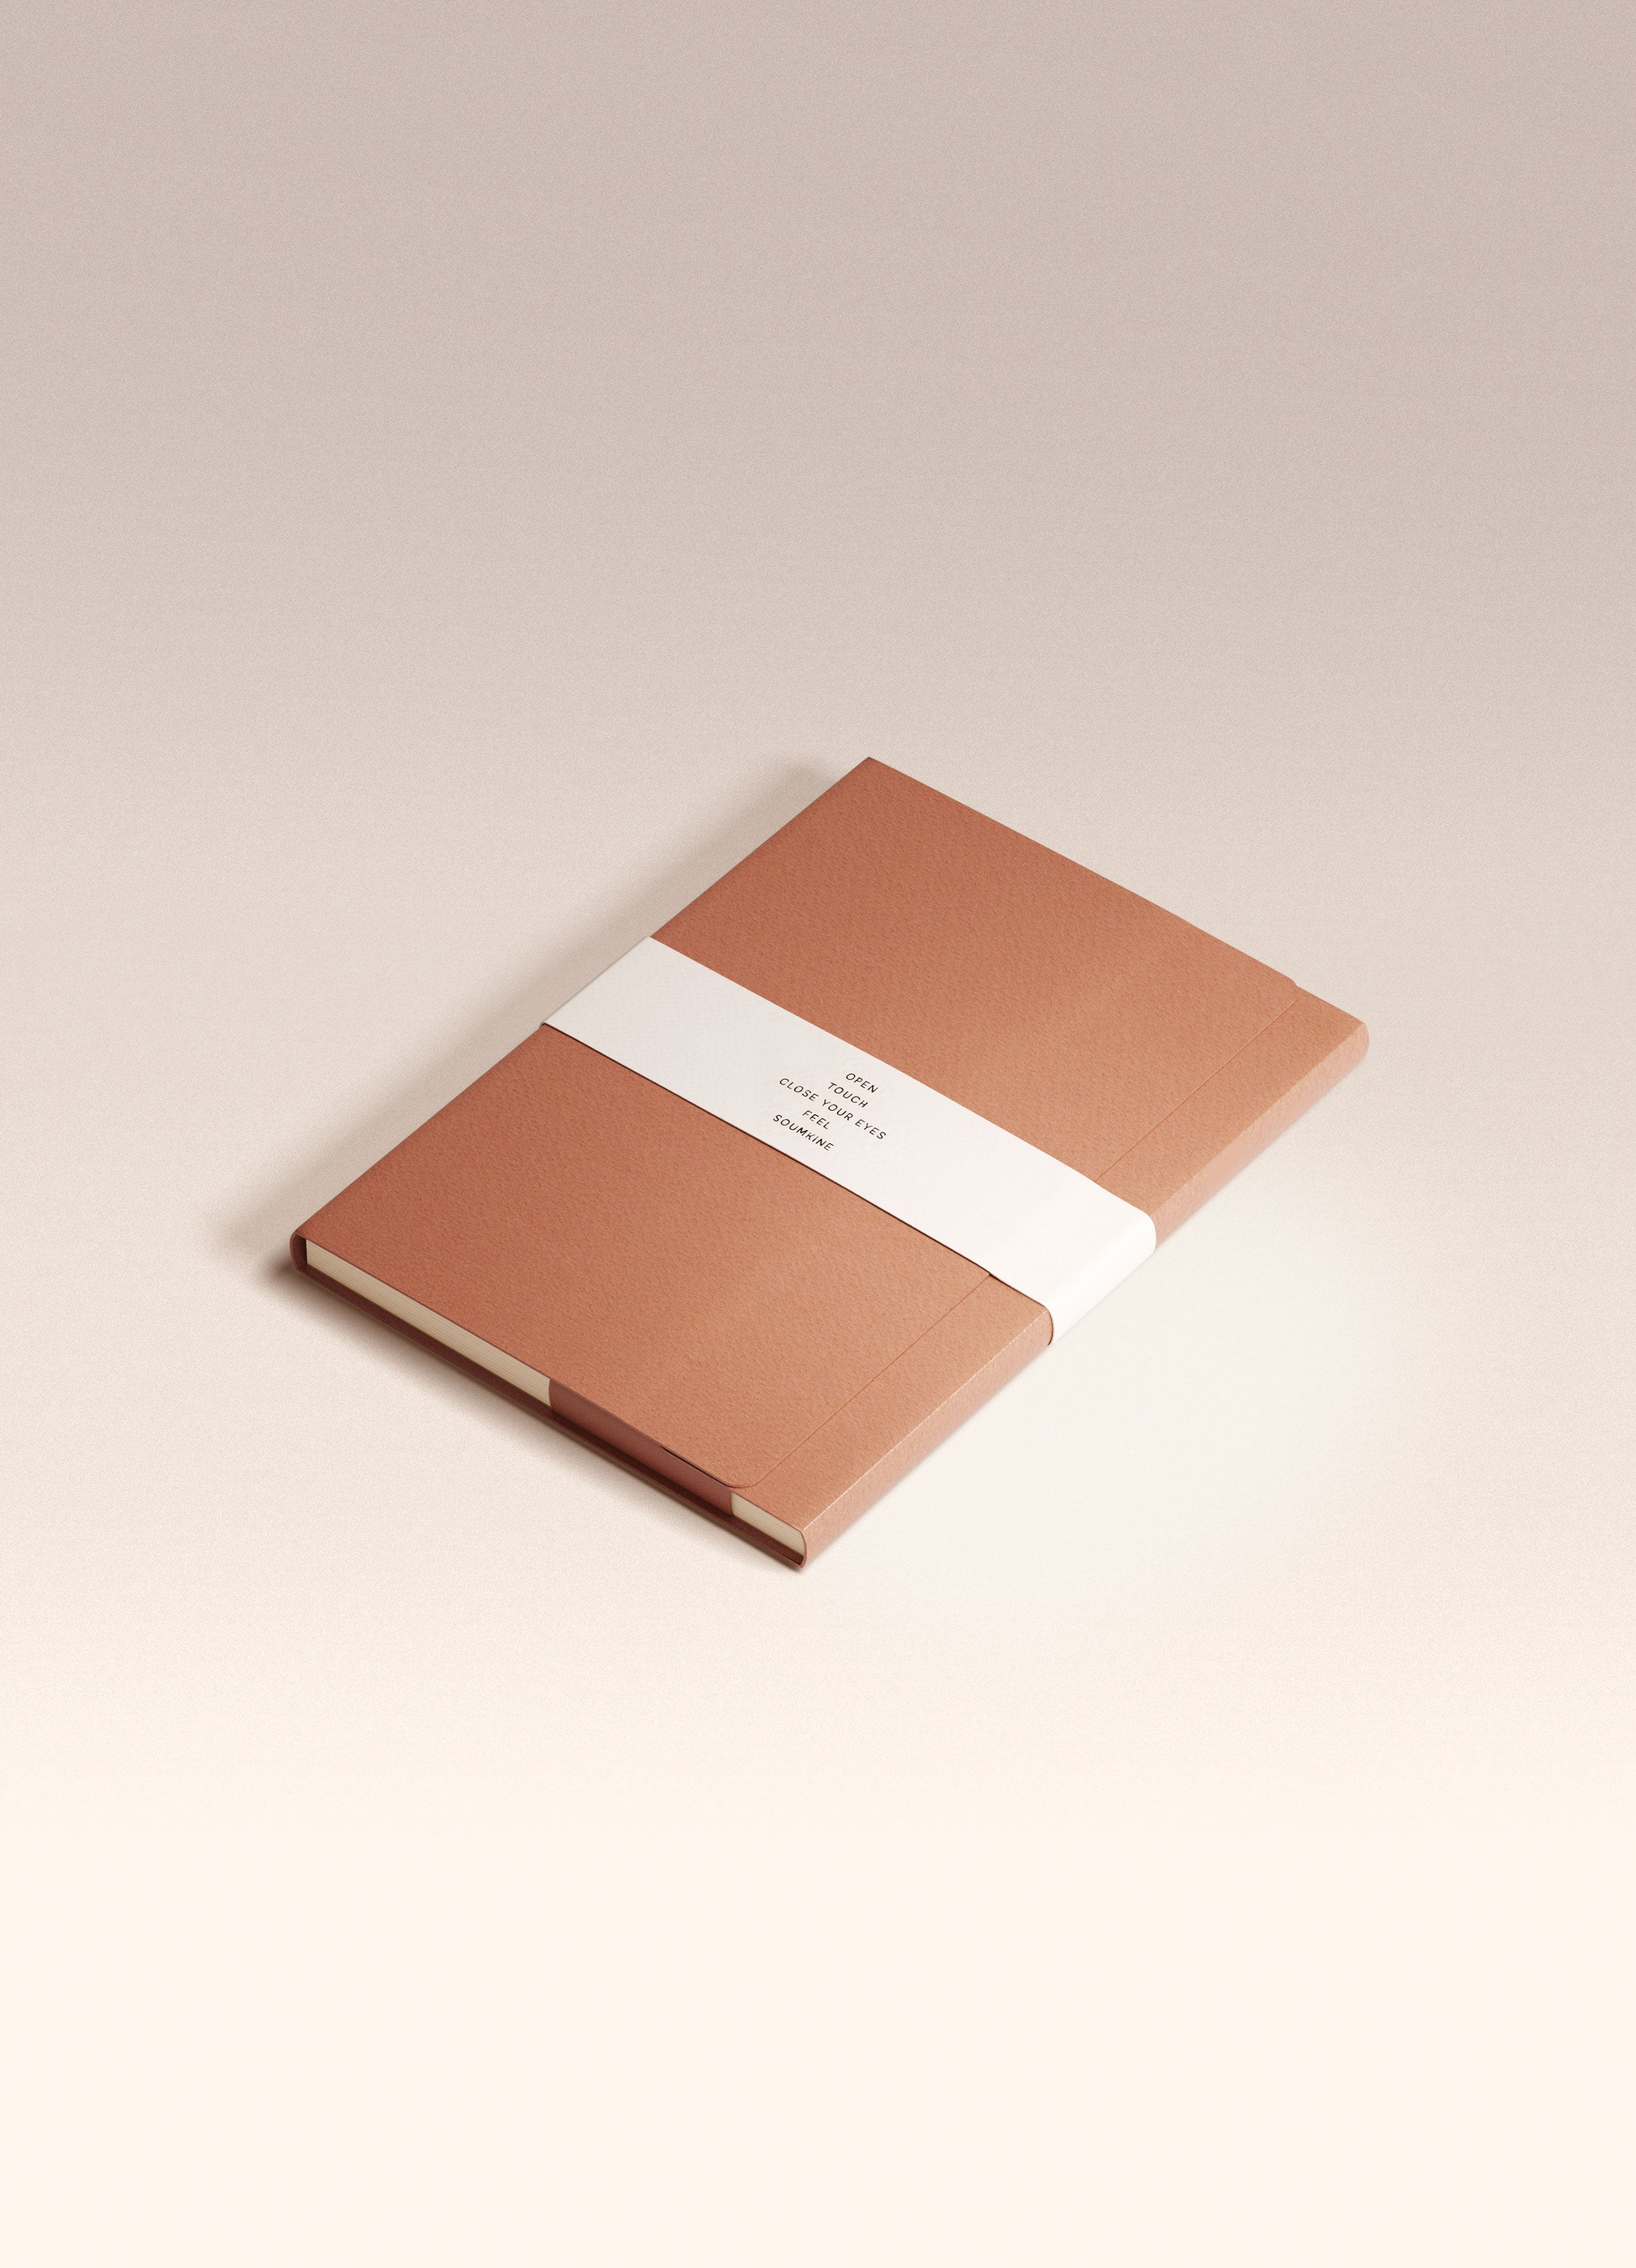 N.404 (PLAIN) Notebook. A5 size